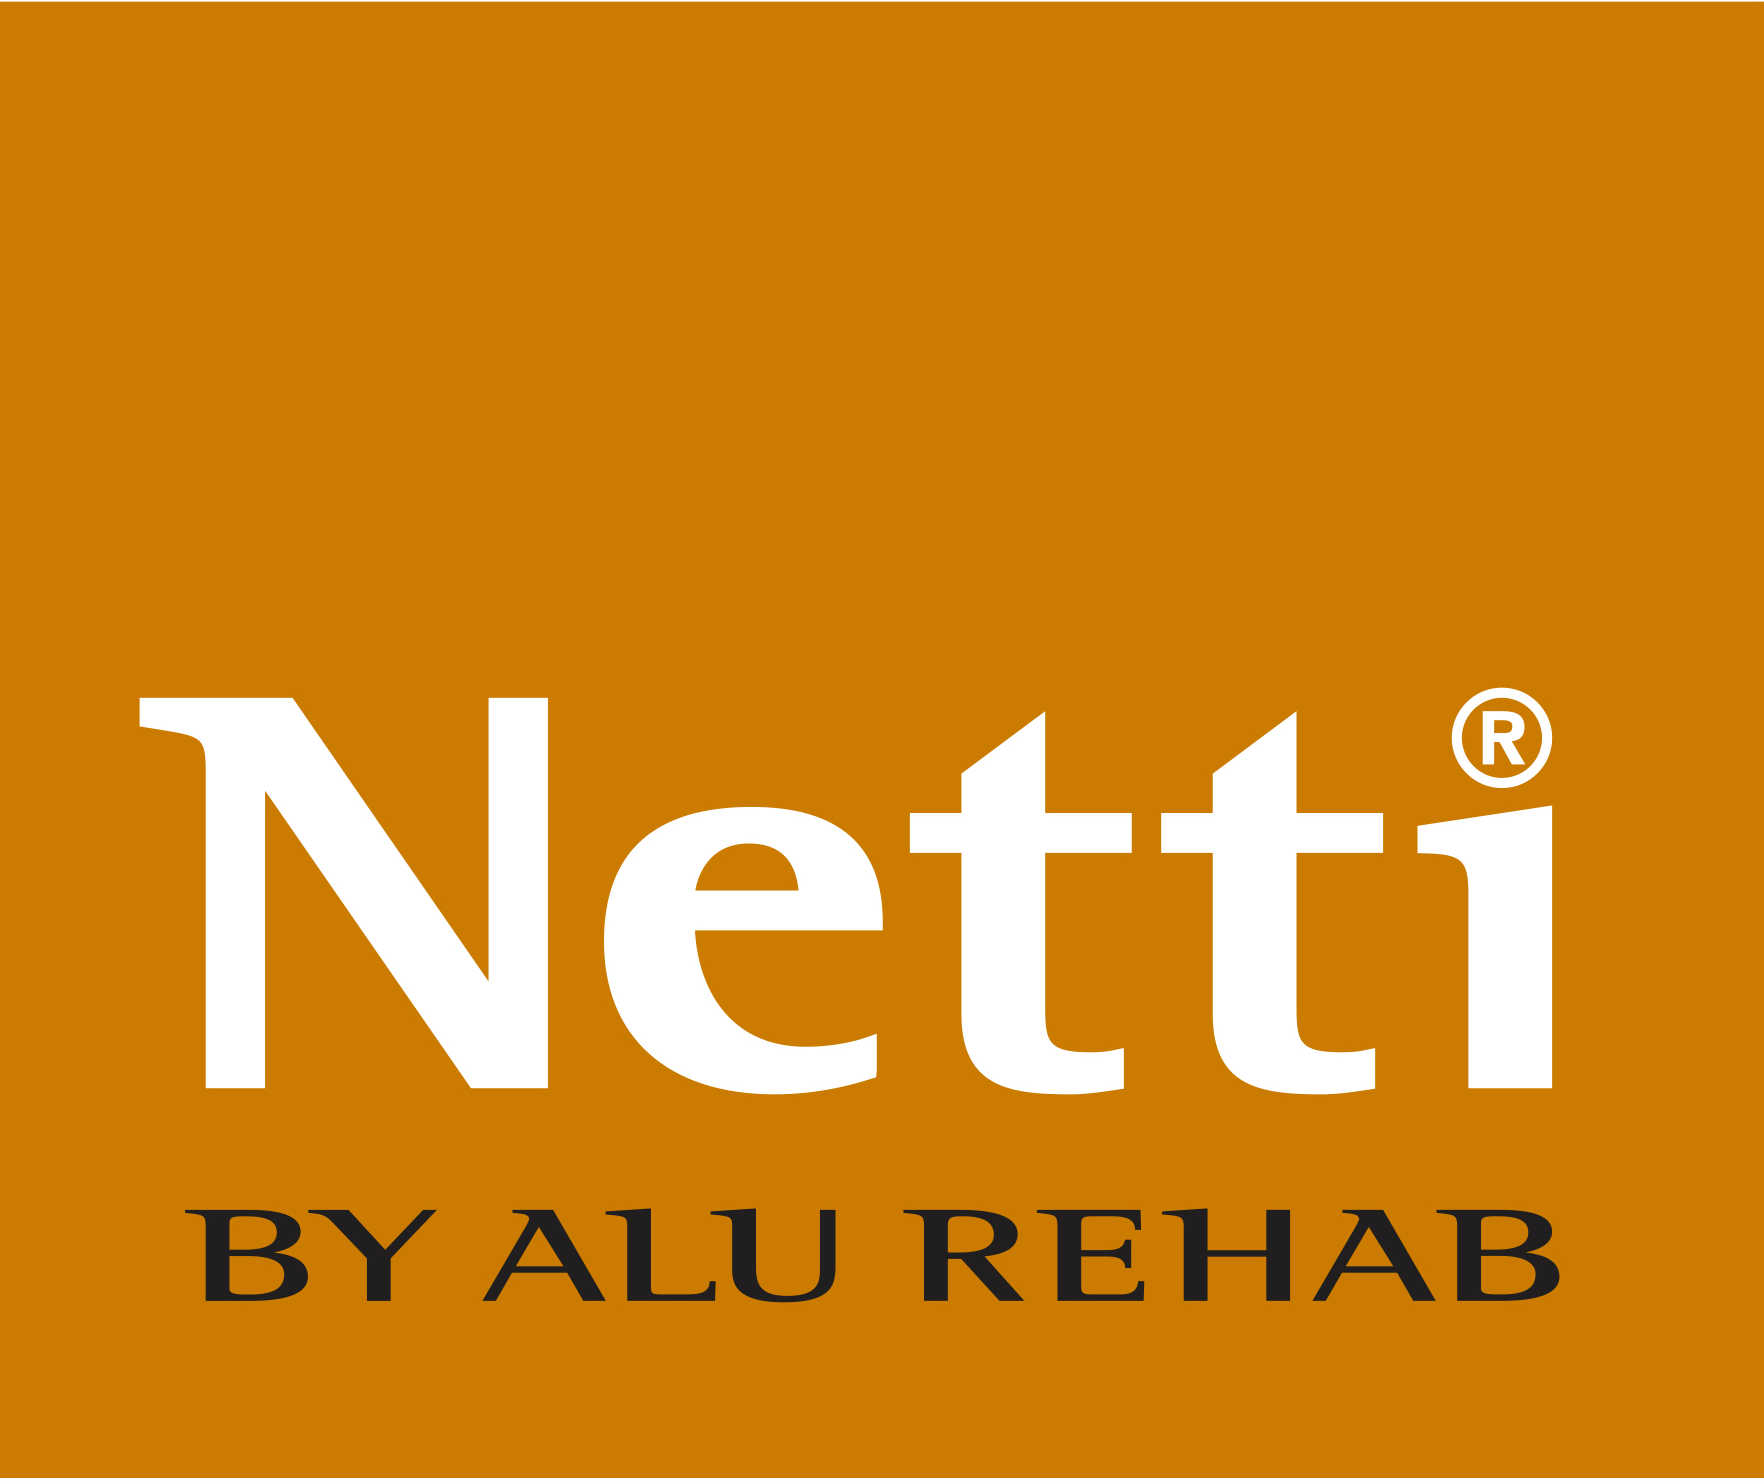 NettiByAluRehab_LOGO_Yellow_pantone 138 C and Black